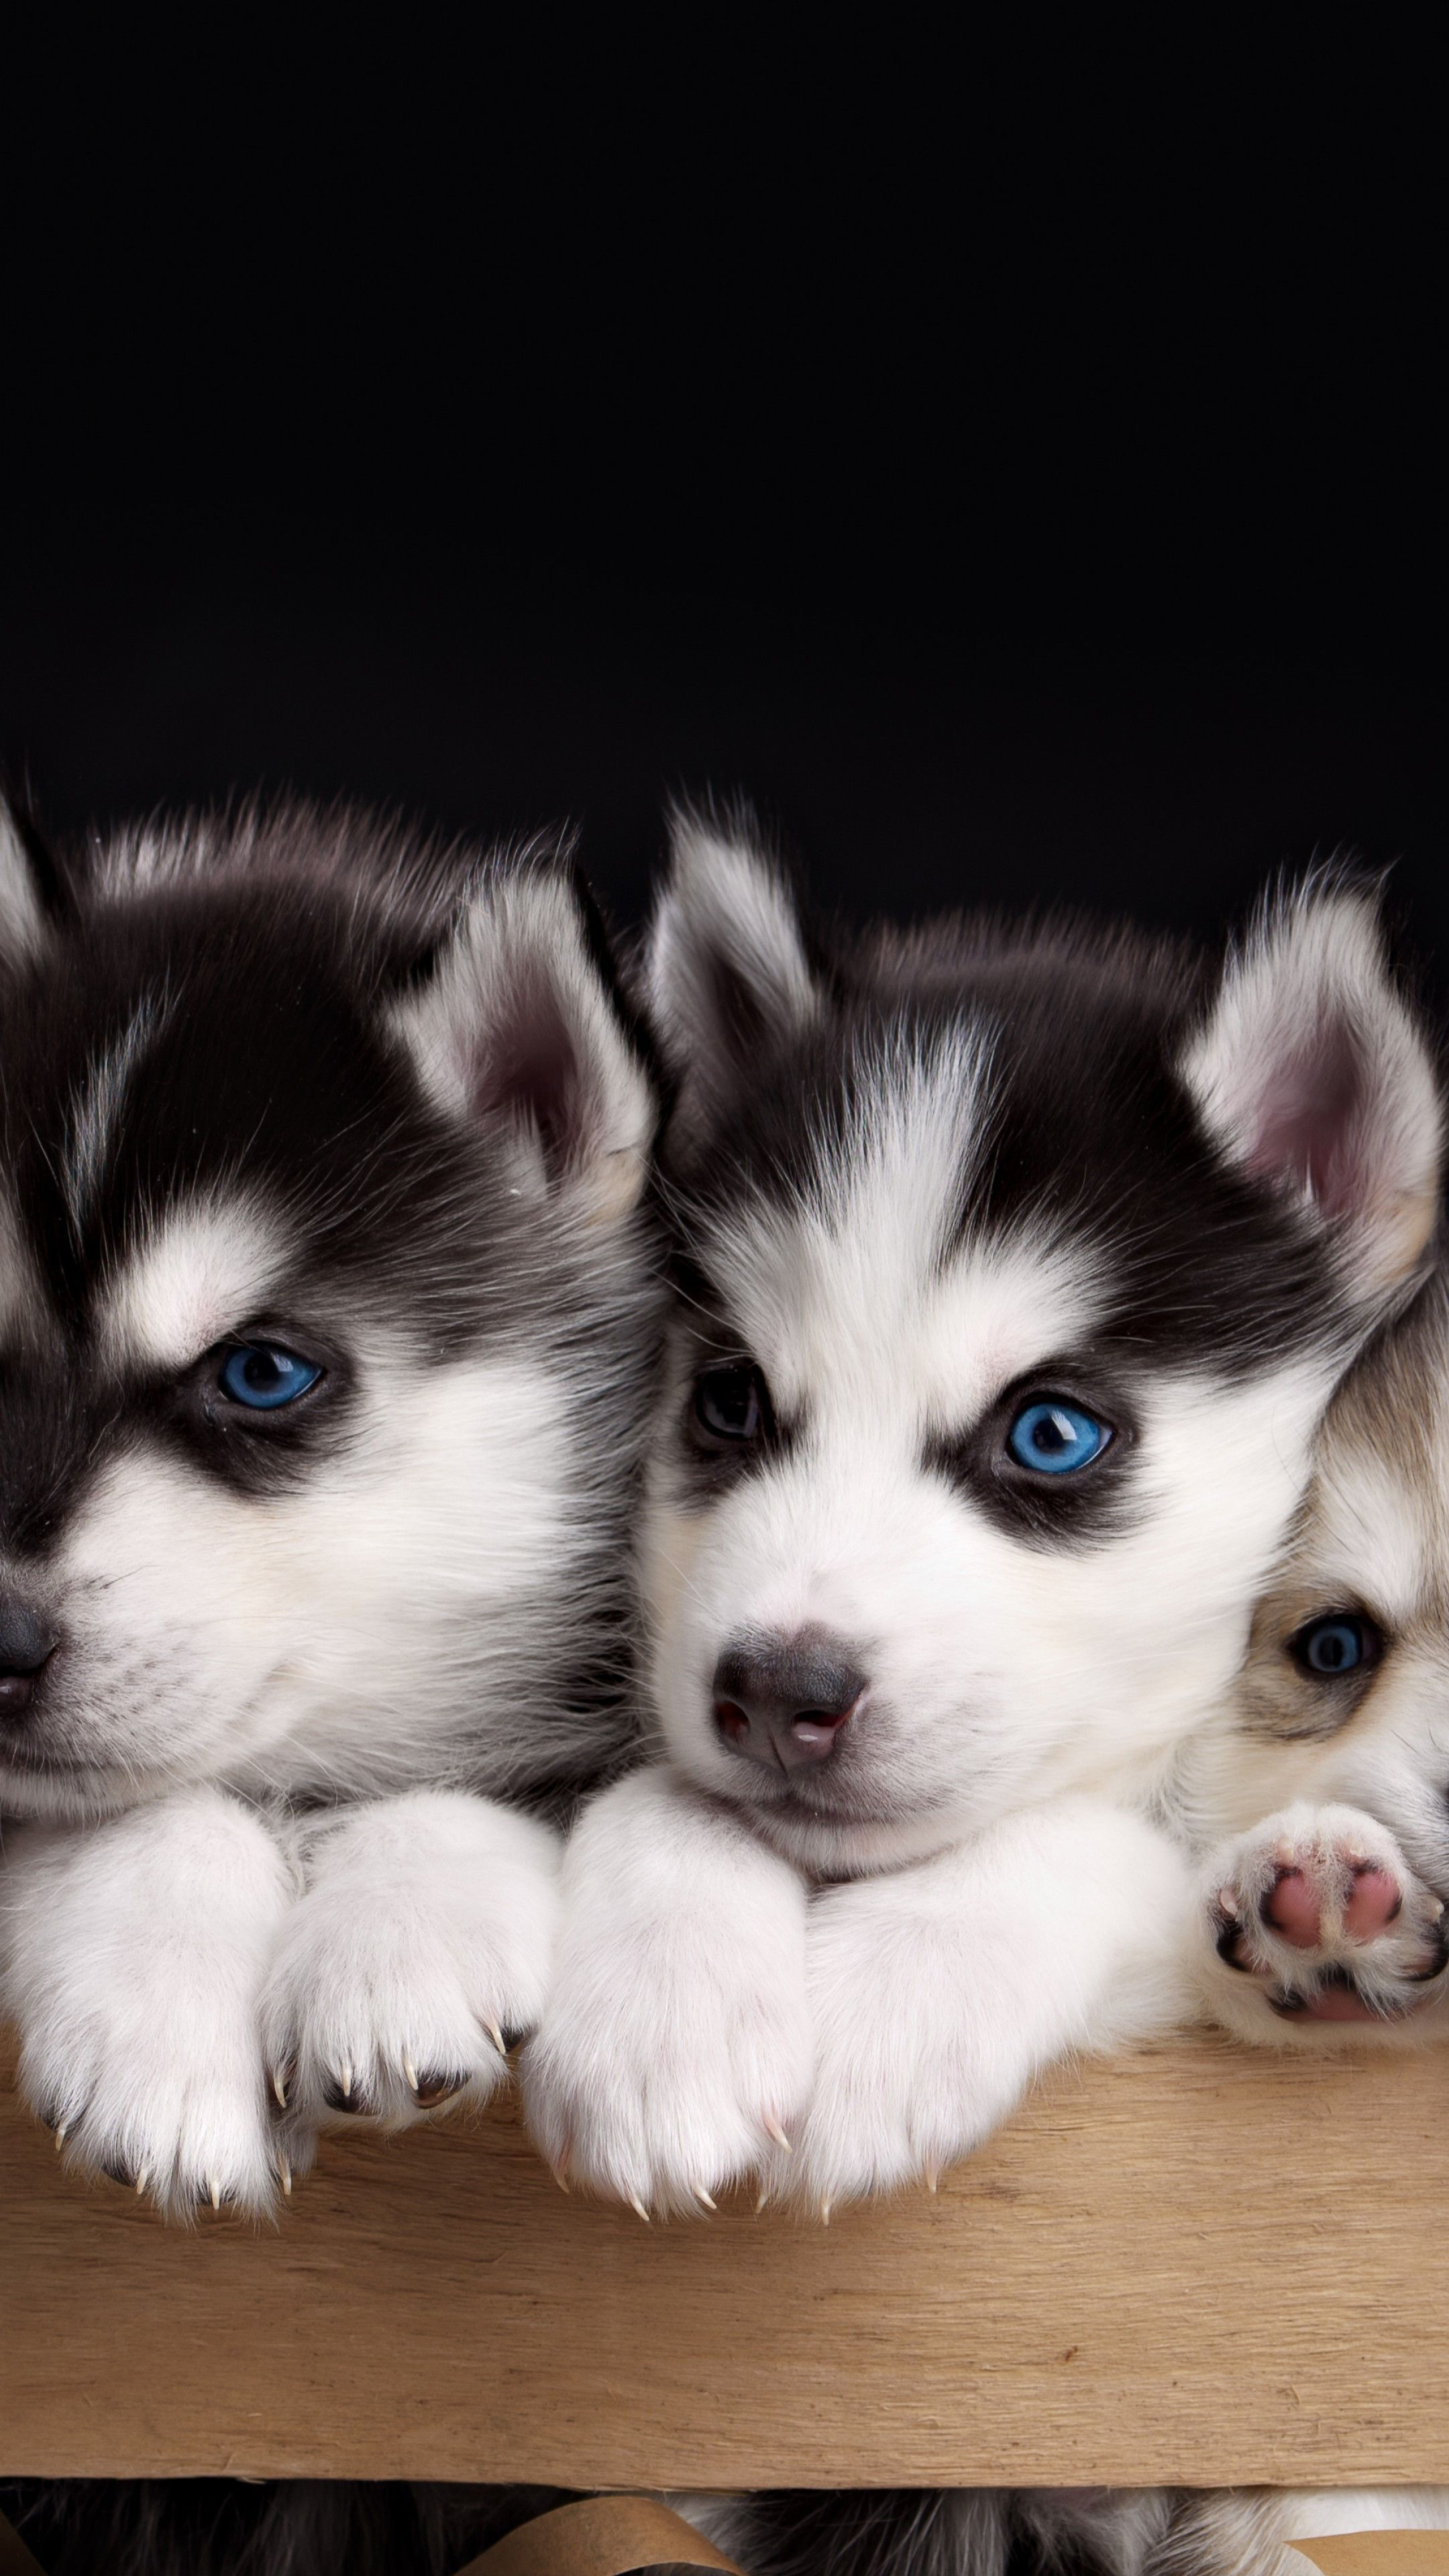 Husky Dog Wallpapers 32 Best Free Husky Dog Images For Android In 2020 Cute Puppy Wallpaper Puppies Cute Puppies